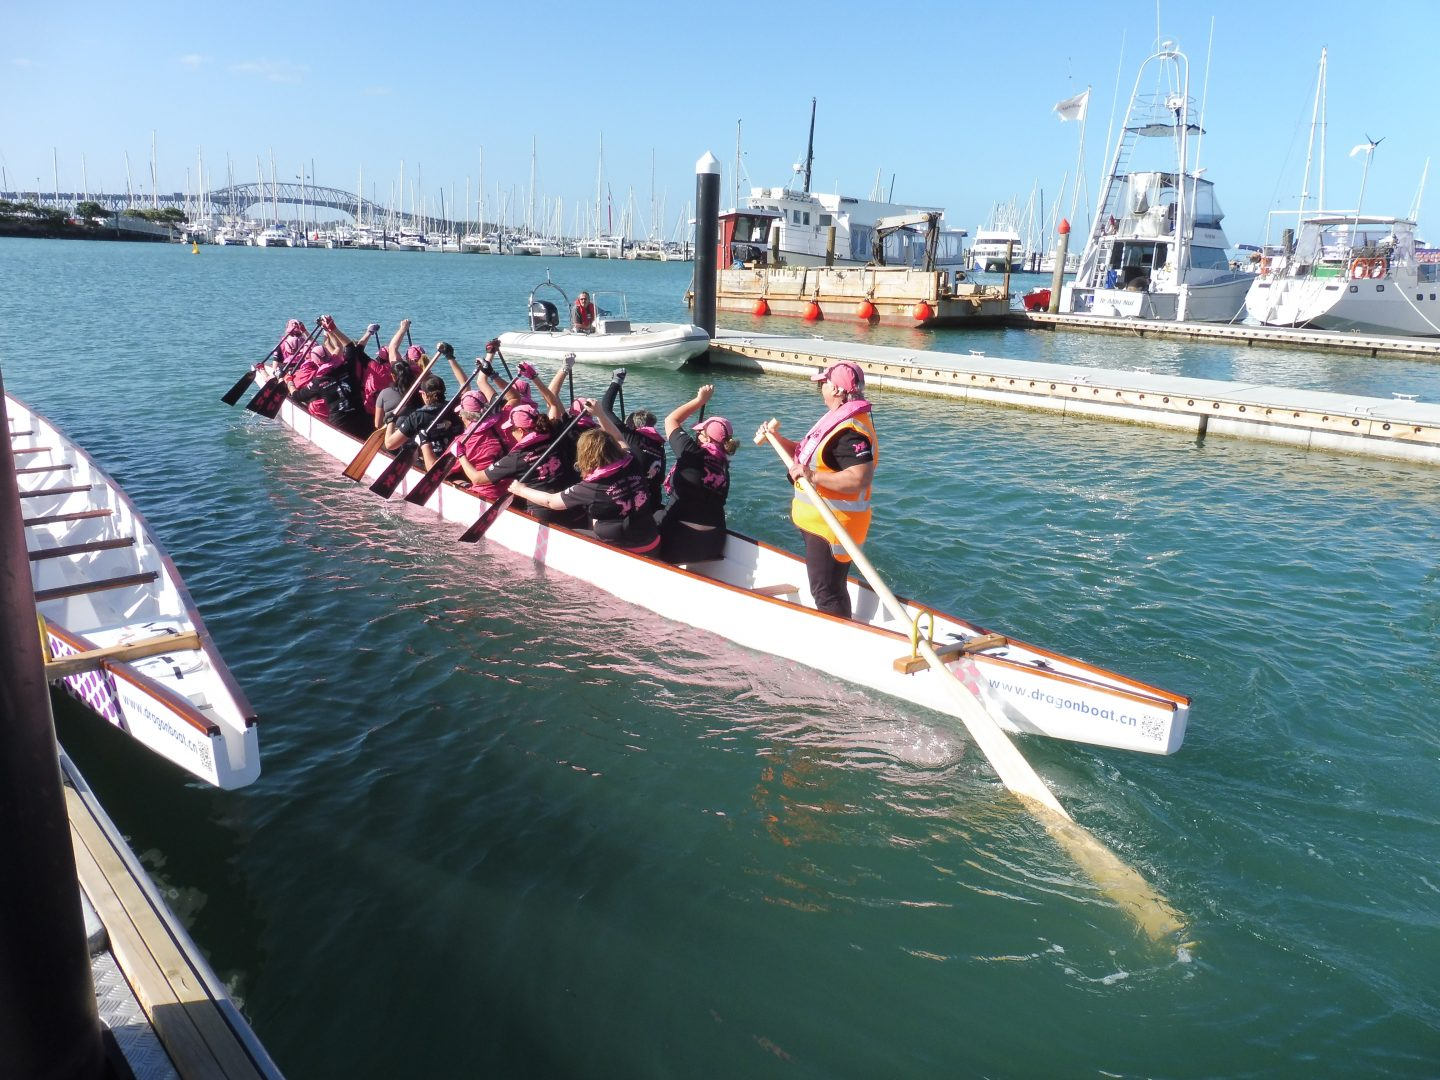 Breast cancer survivor dragon boat team Auckland